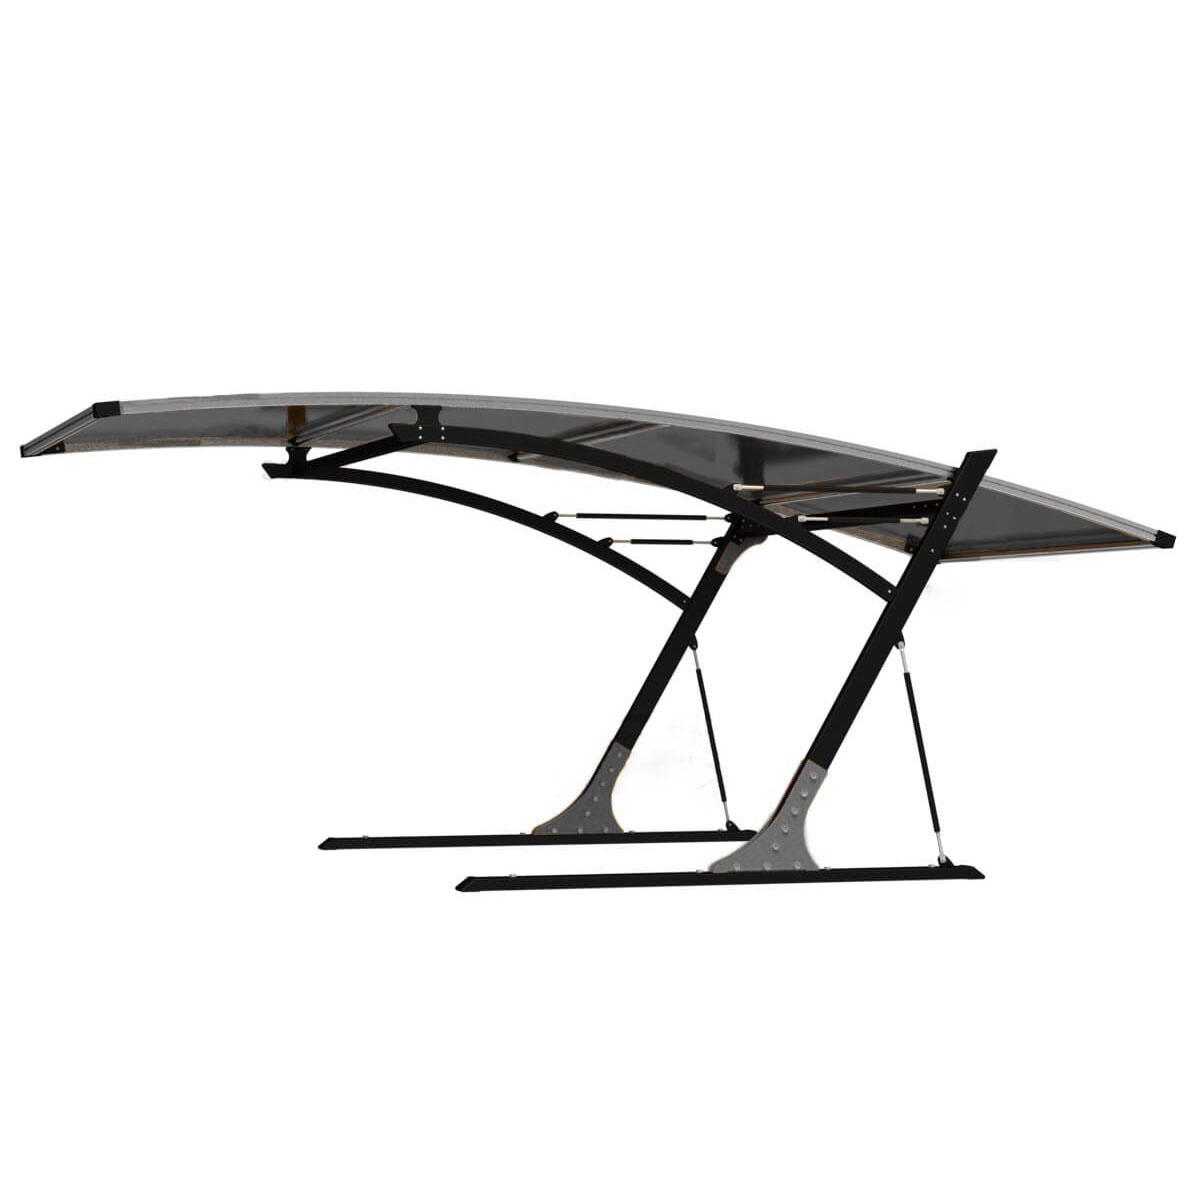 Weather Proof Single Lot Canopy Carport Shelter in Gray